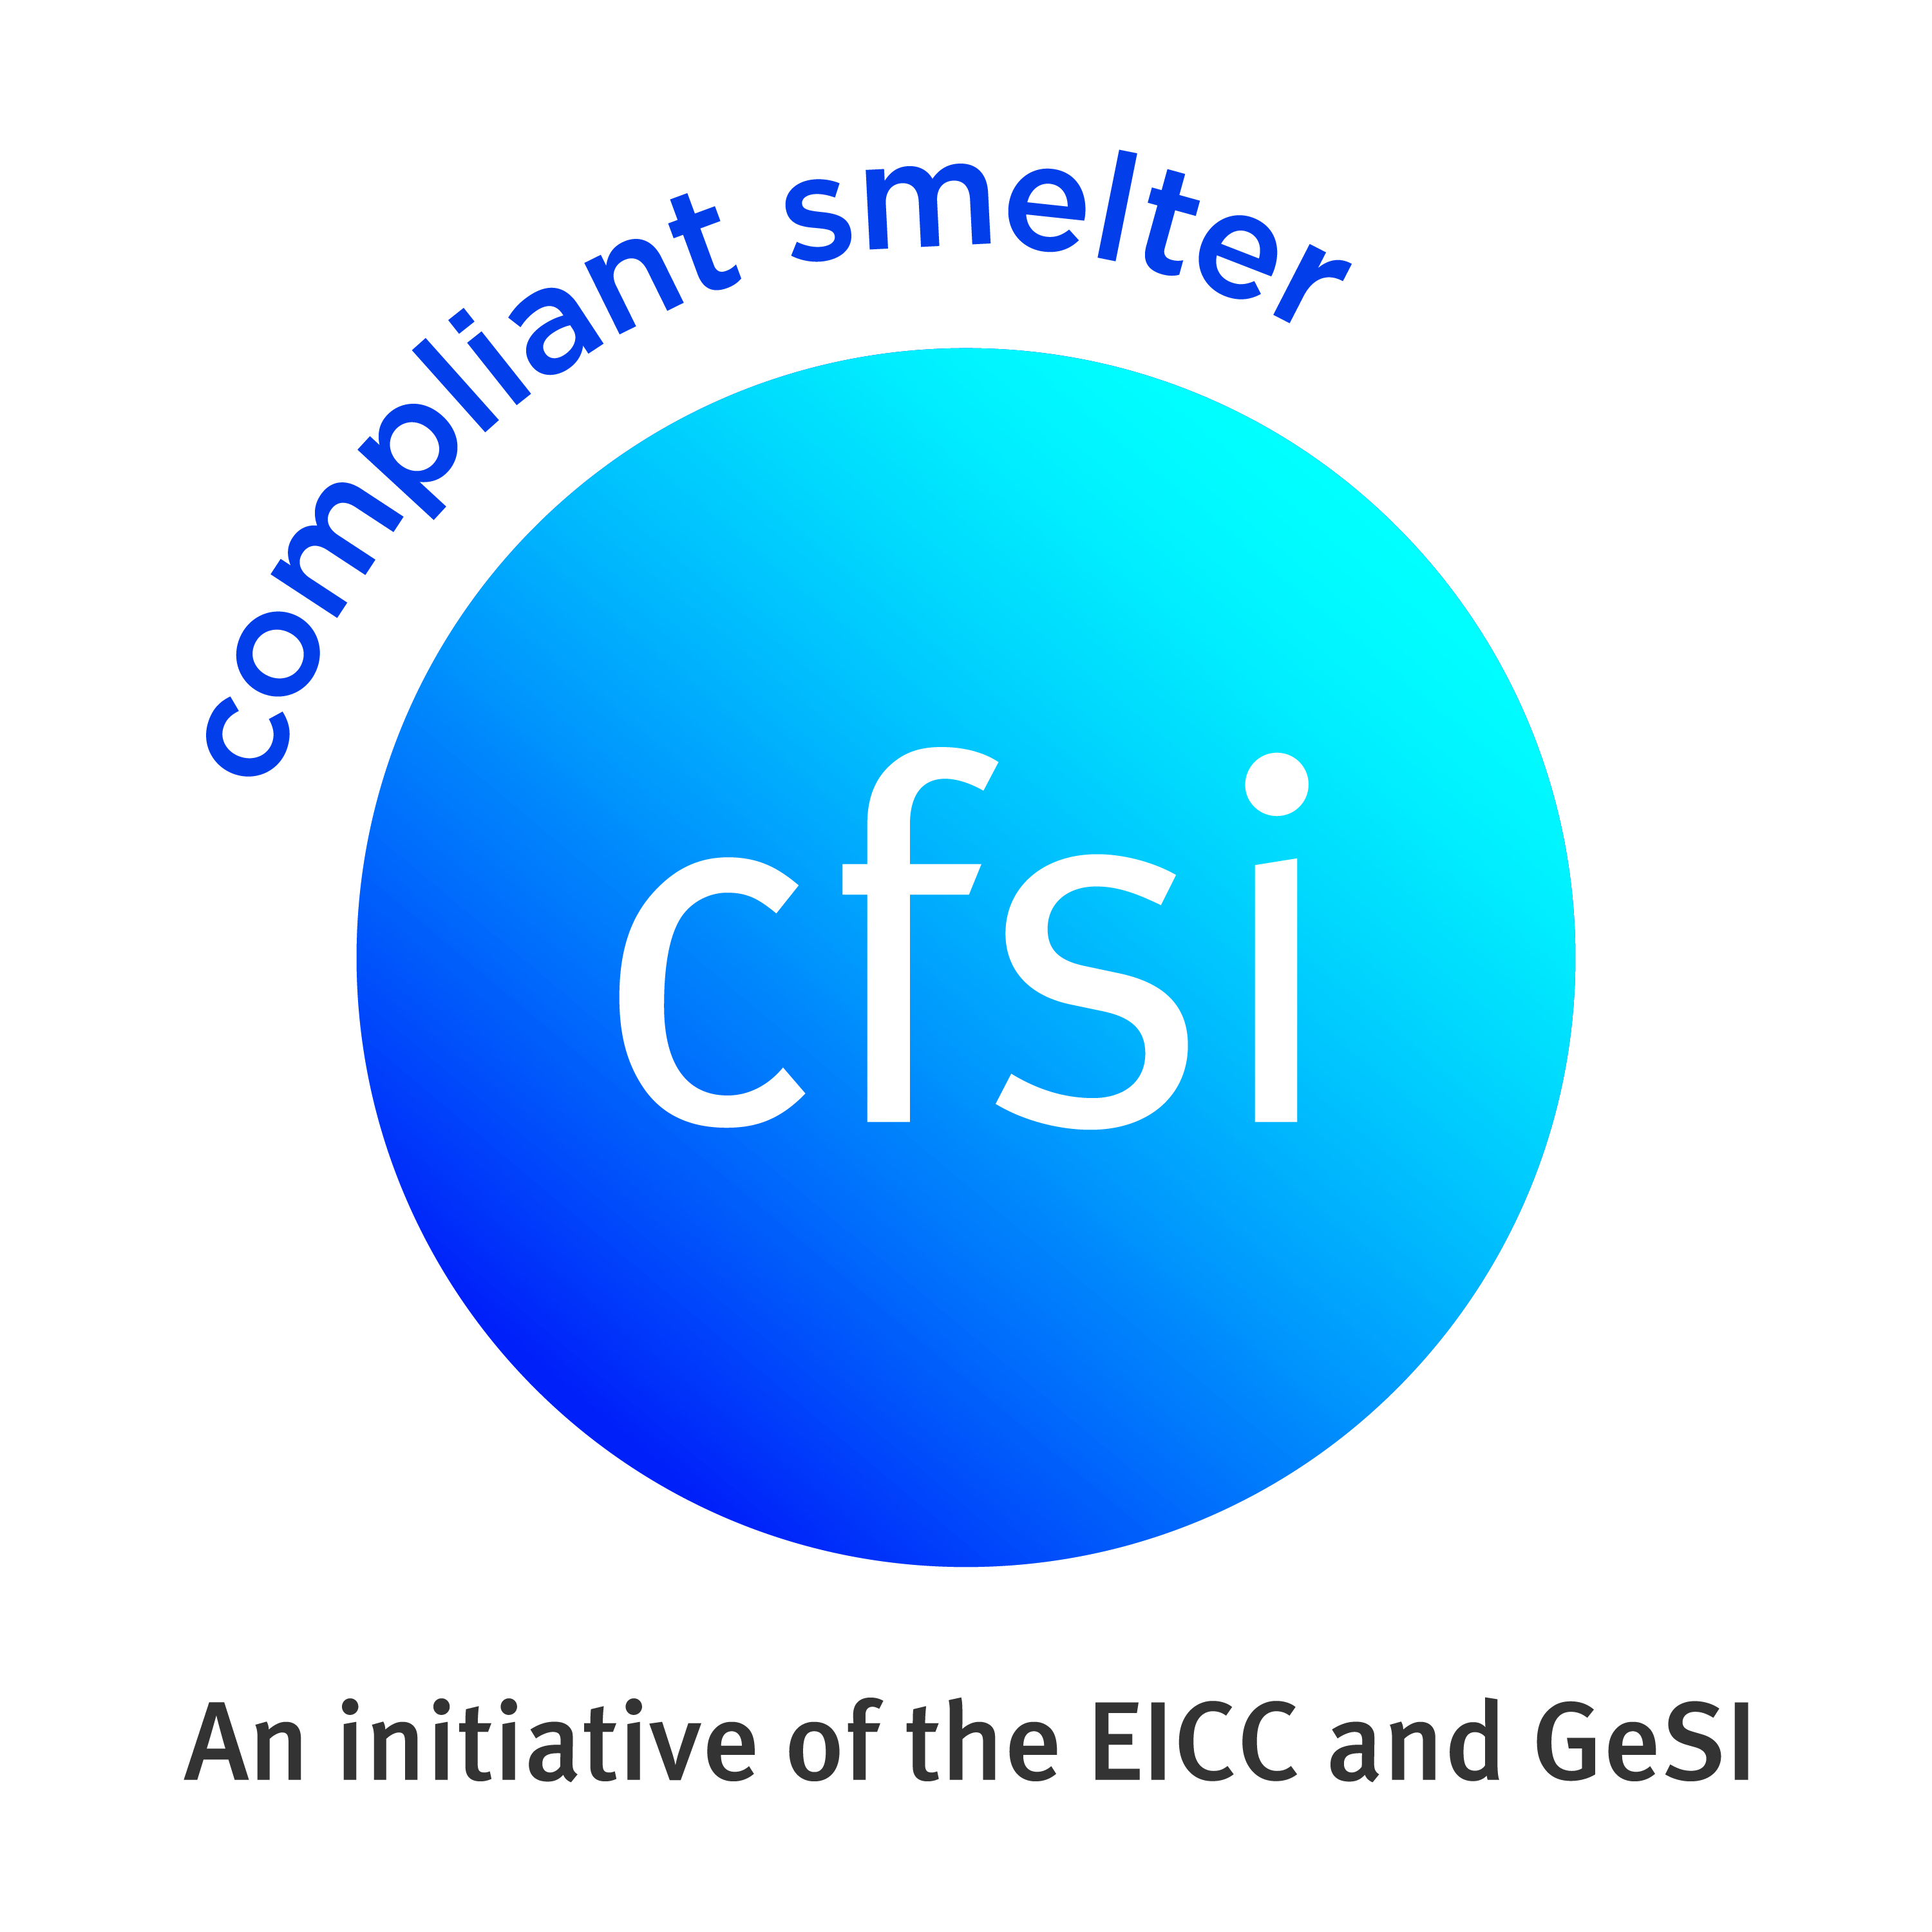 CFSI Compliant Smelter